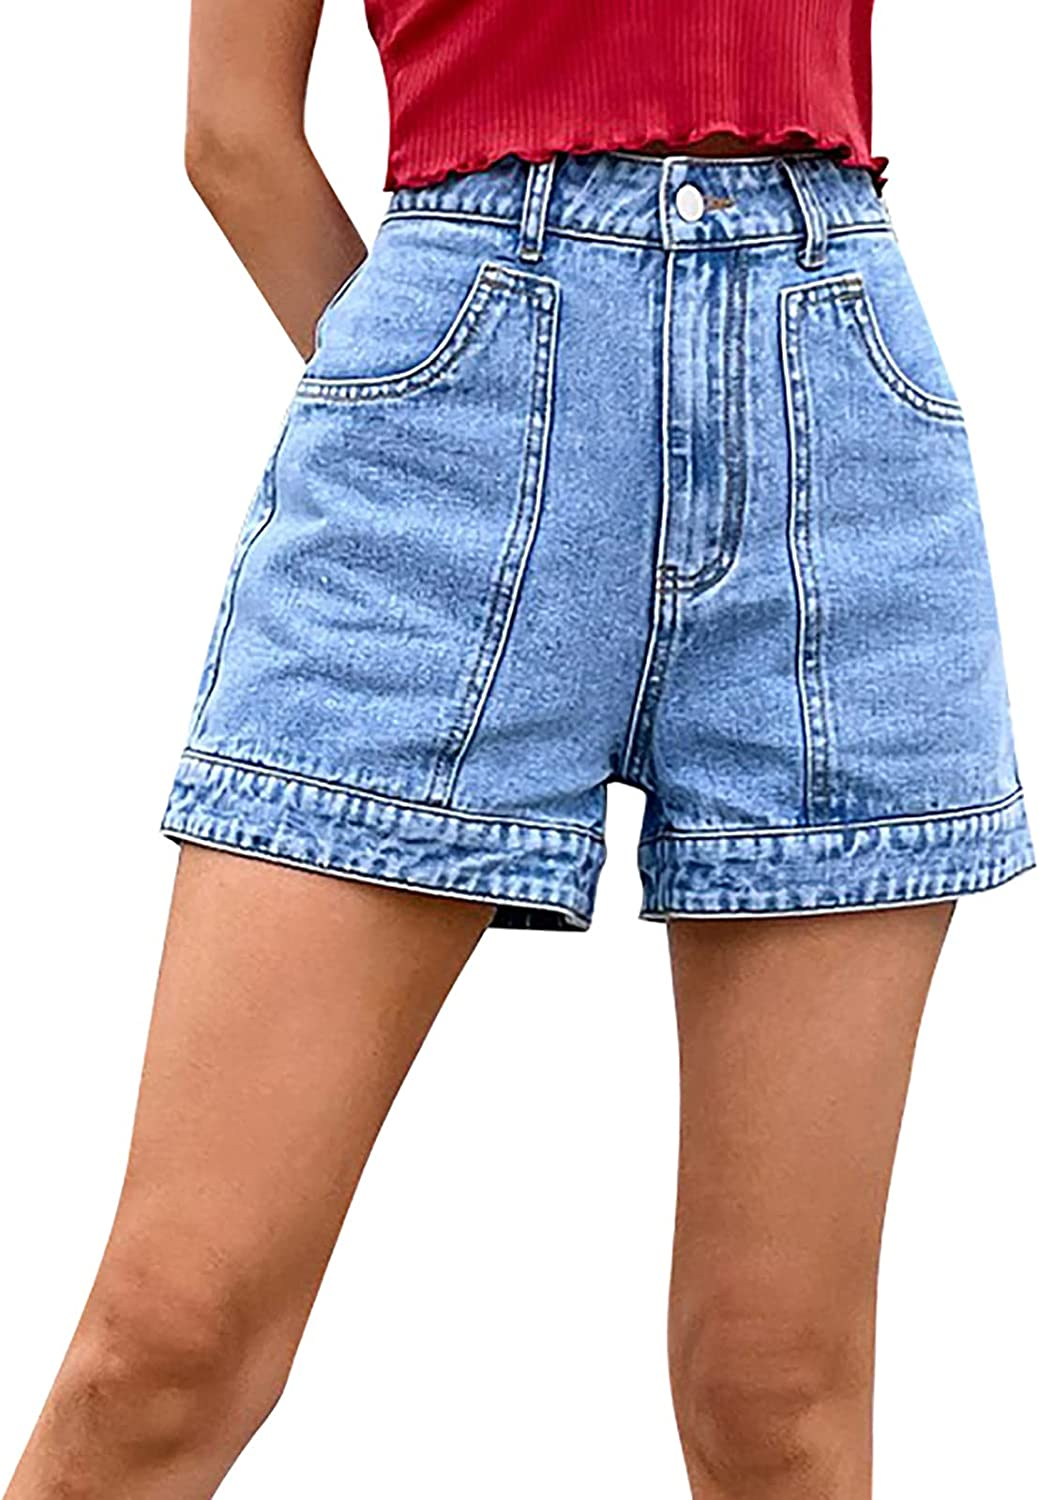 Denim Shorts for Women Fashion Mid Rise Casual Summer Stretchy Jean Women Denim Shorts with Pockets